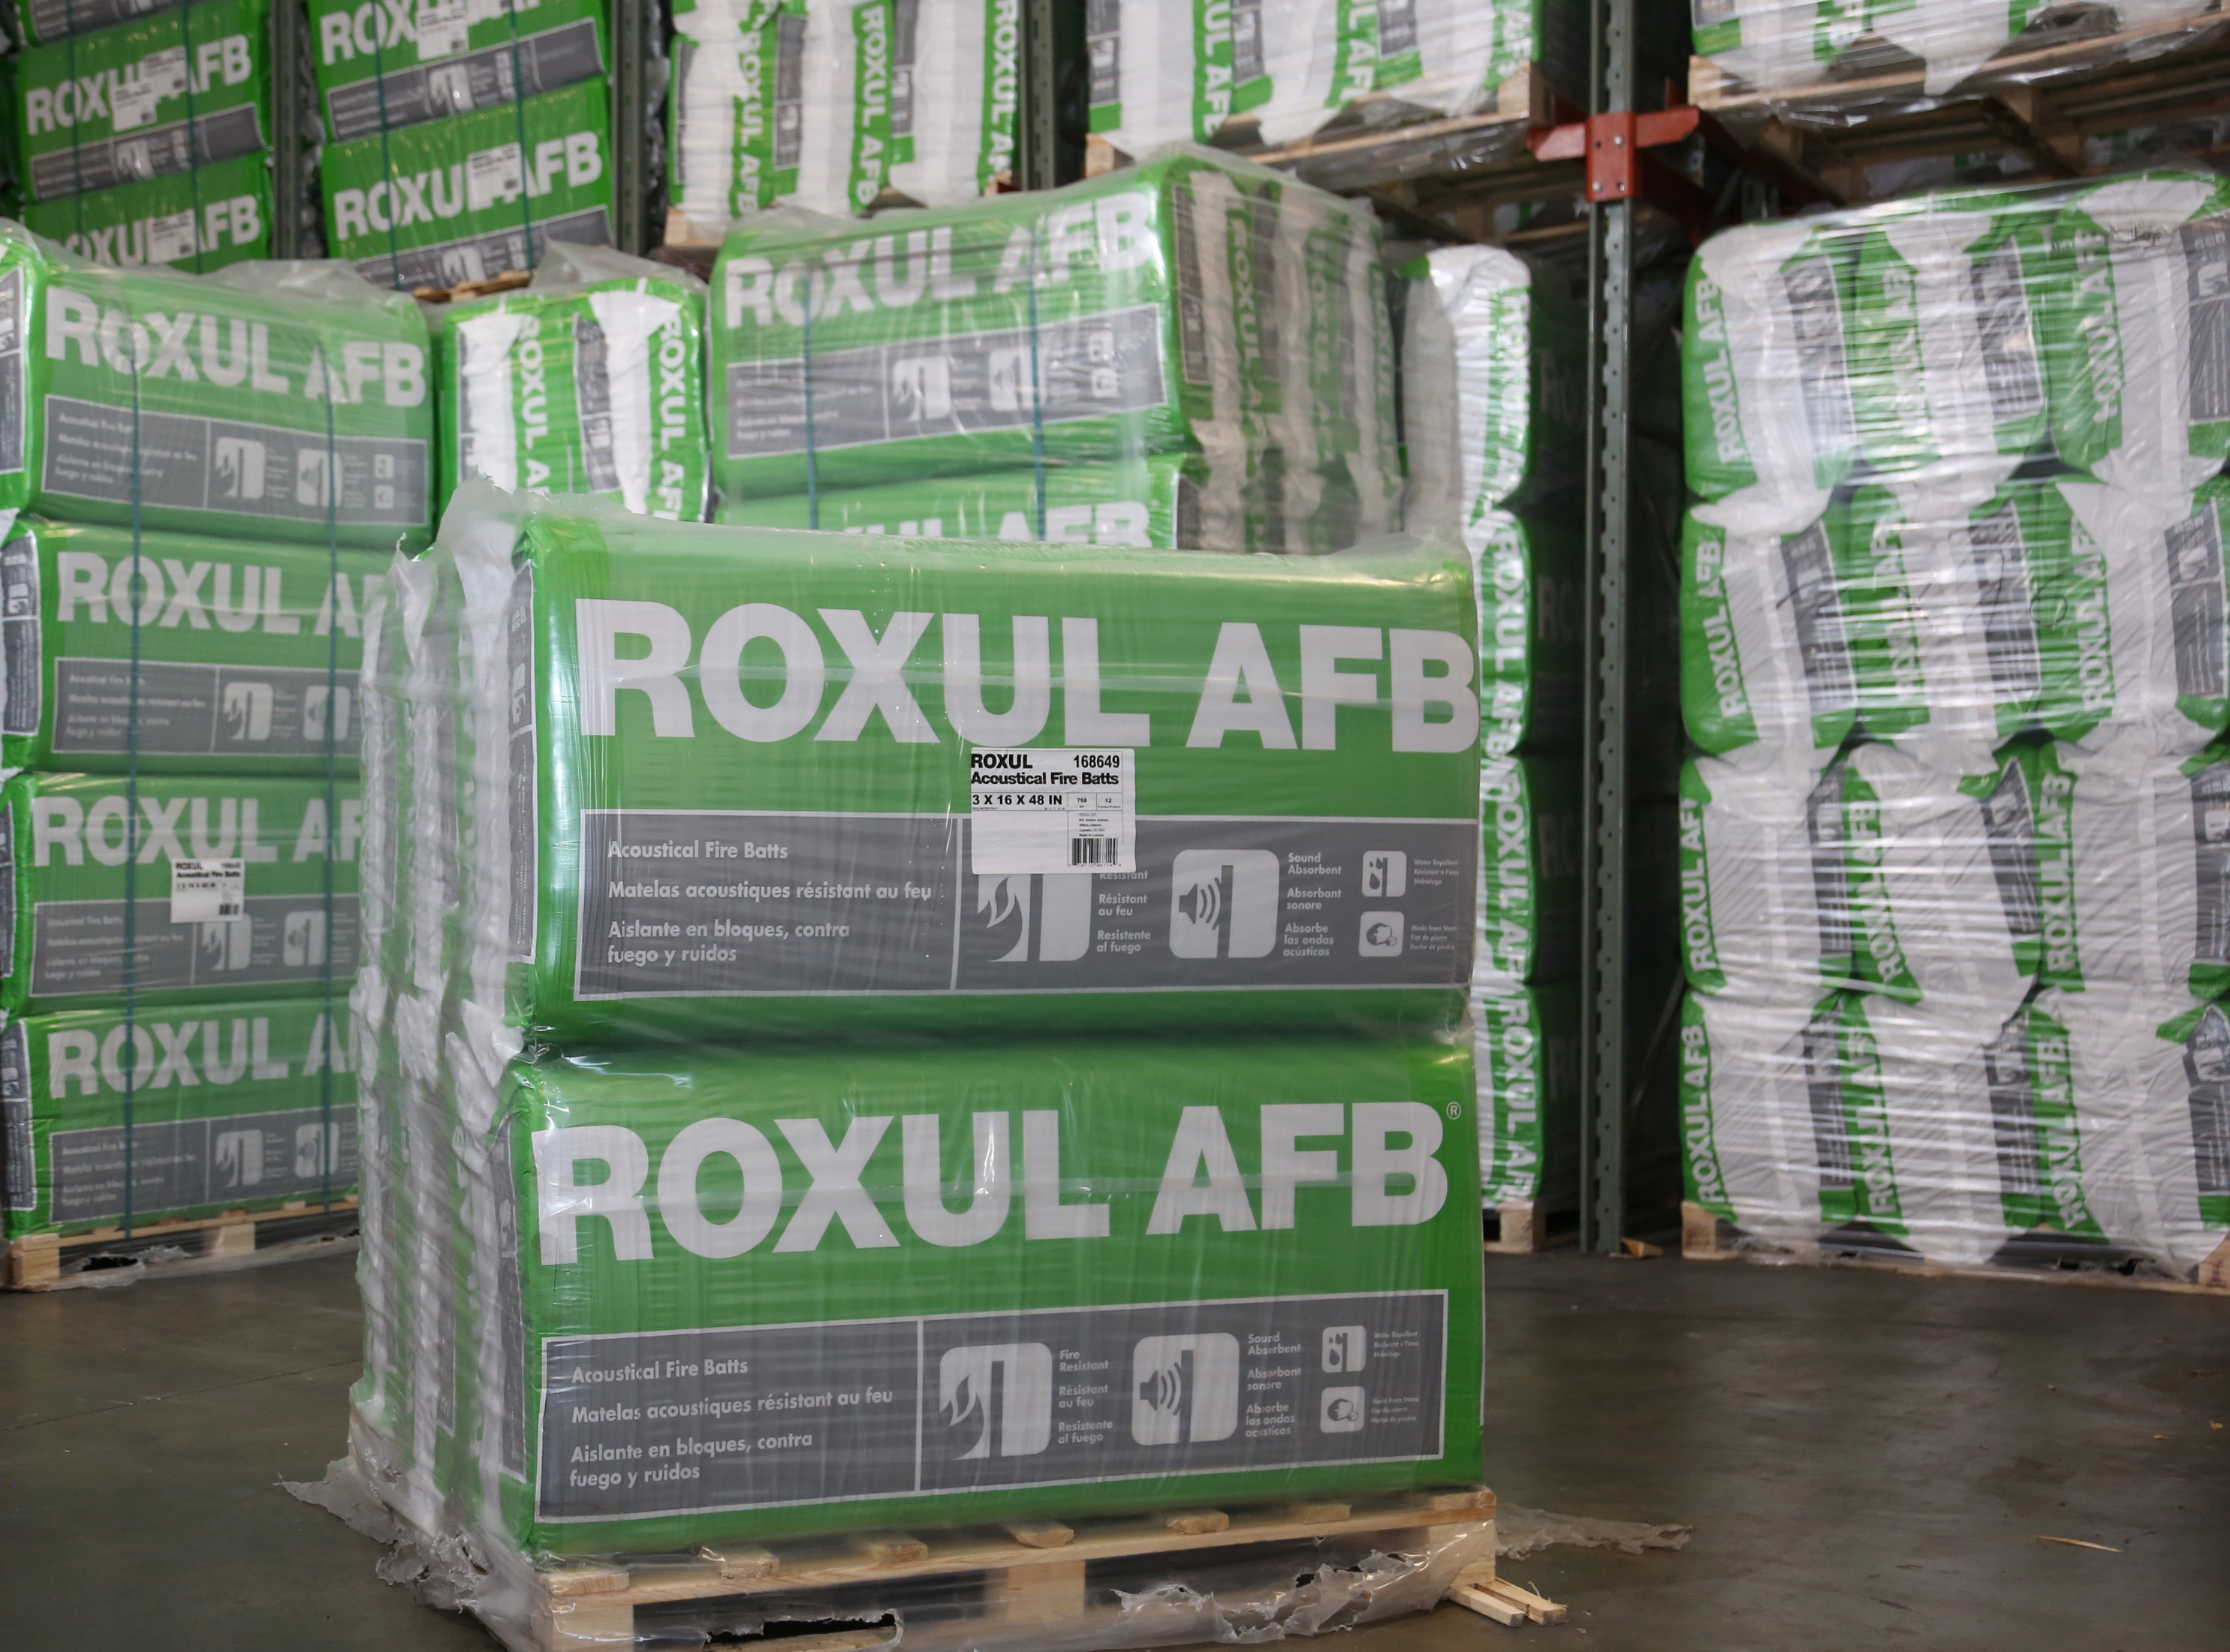 Roxul mineral wool lnsulation building materials for Roxul mineral wool r value